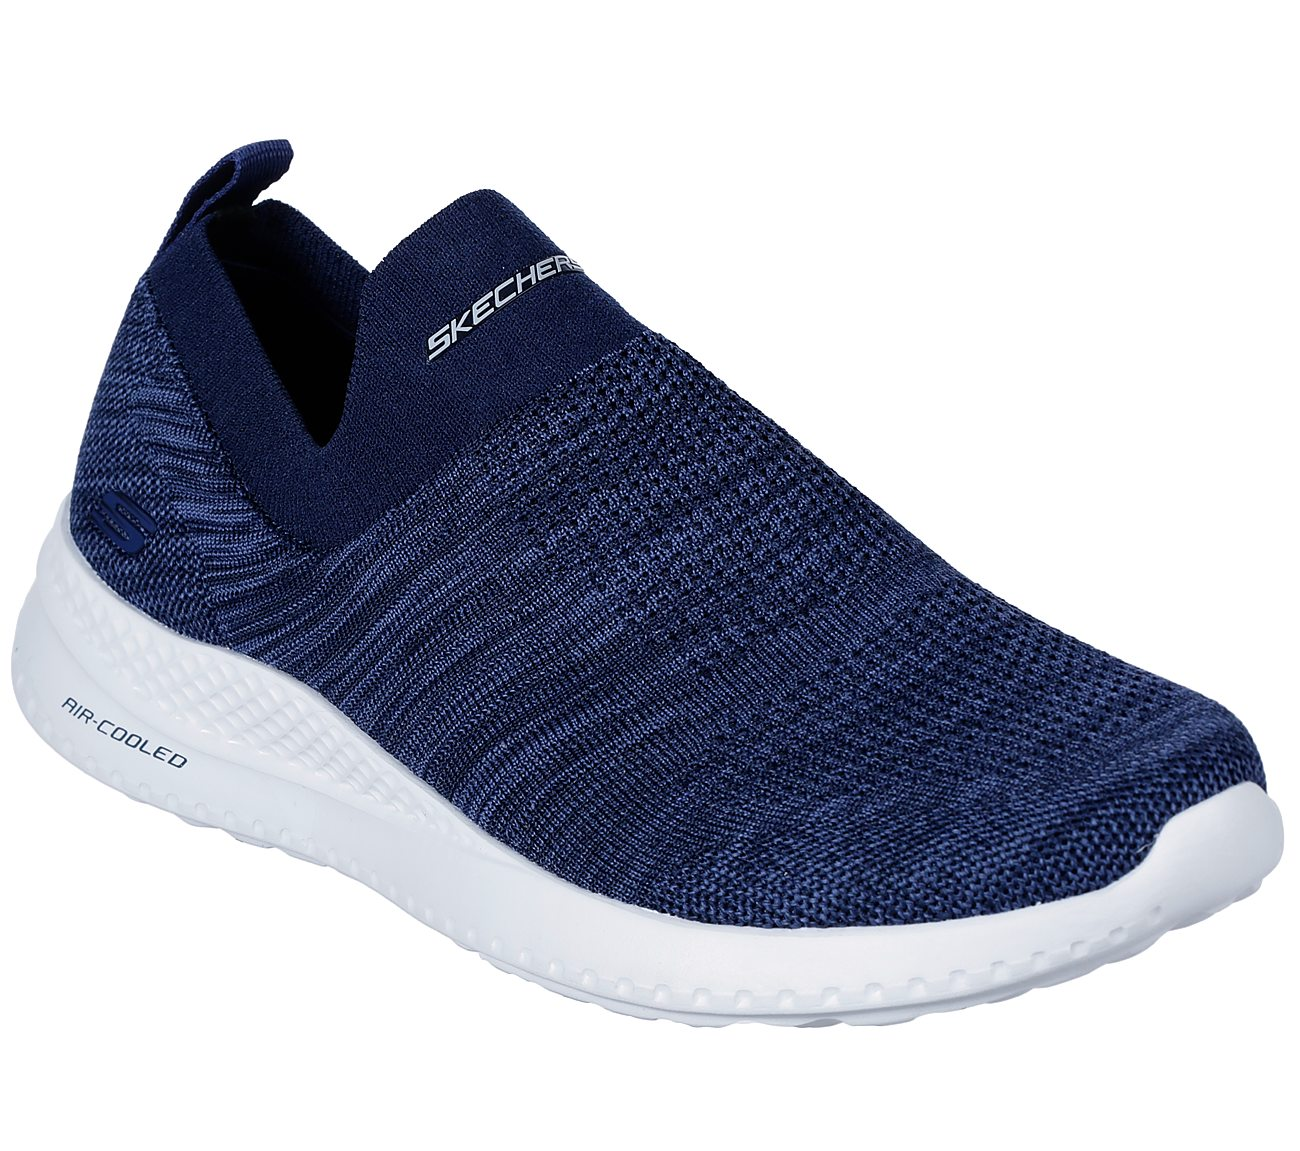 Skechers memory foam wide + FREE SHIPPING |